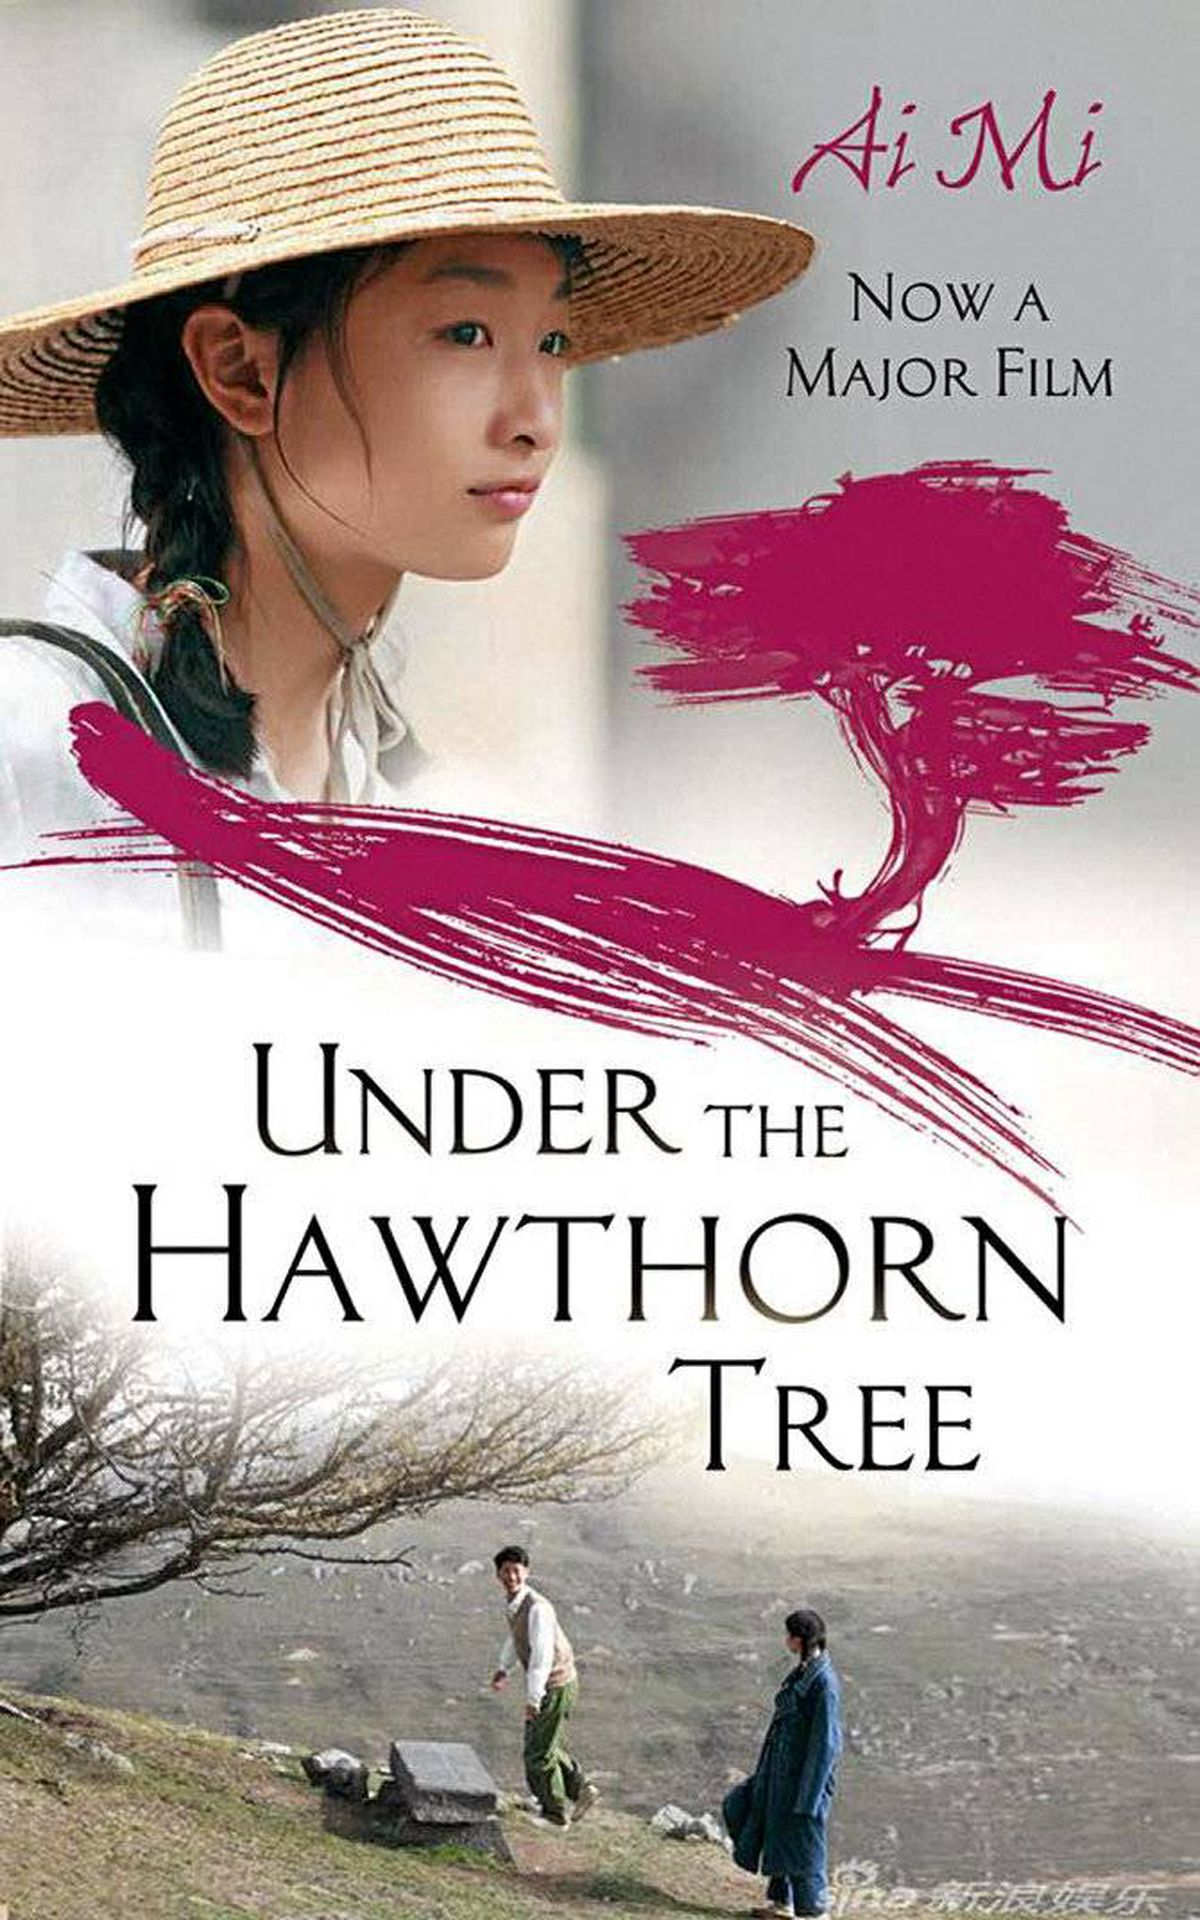 Under the Hawthorn Tree, By Ai Mi, translated by Anna Holmwood, Anansi, 352 pages, $19.95